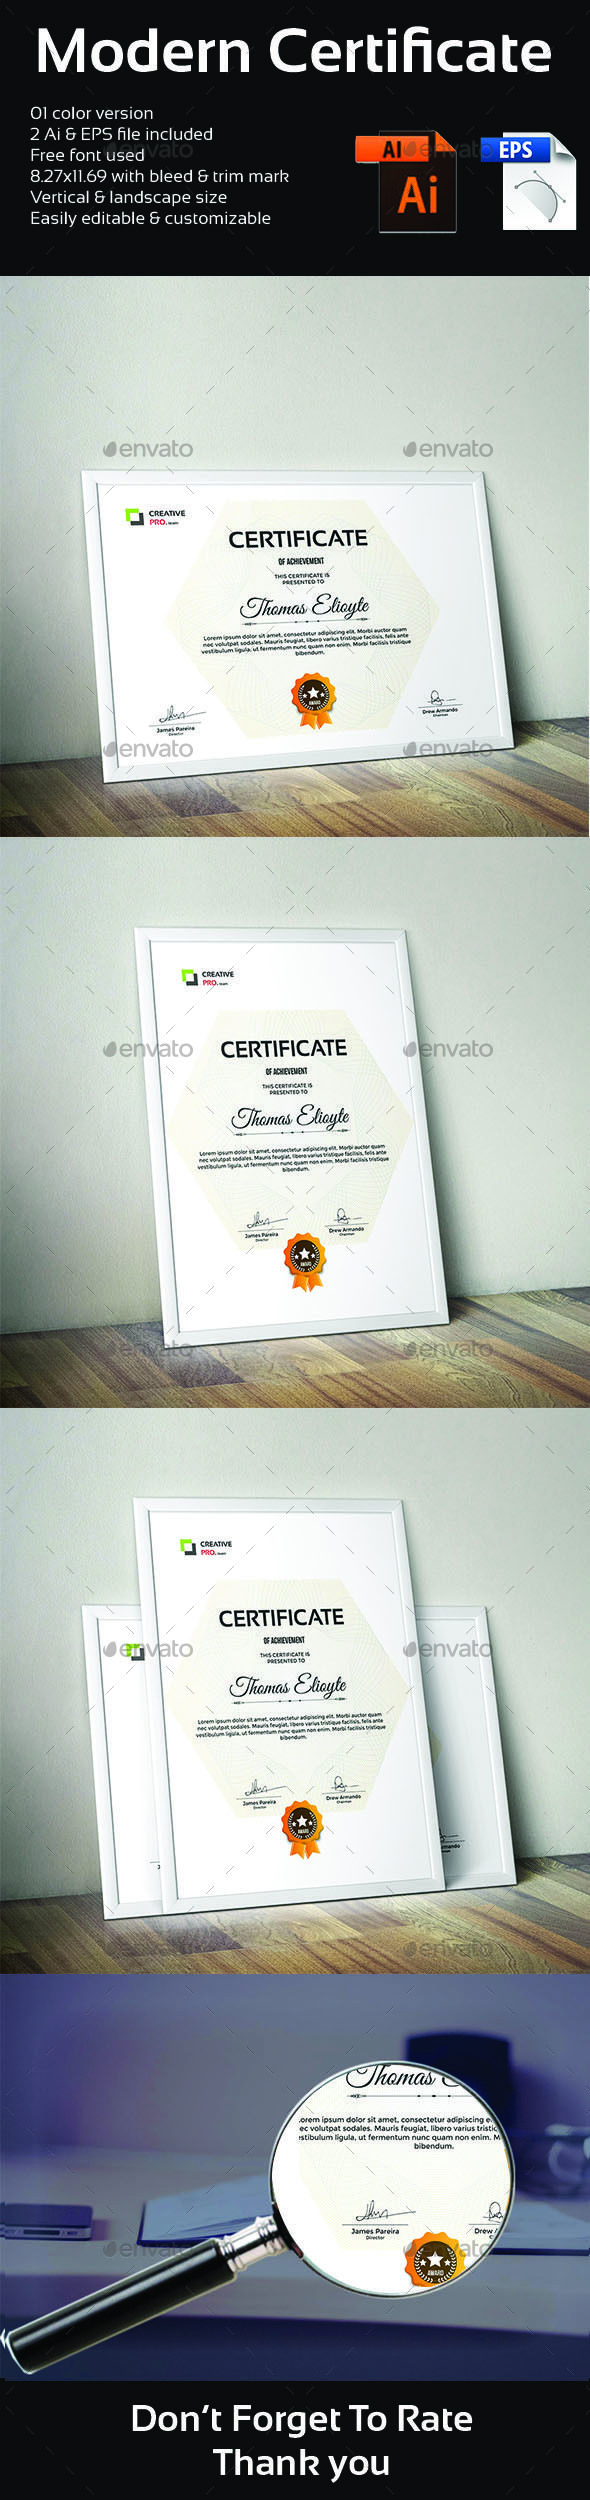 Corporate Simple Certificate Design Template - Certificates Stationery Design Template Vector EPS, AI Illustrator. Download here: https://graphicriver.net/item/certificate-template/19213430?ref=yinkira